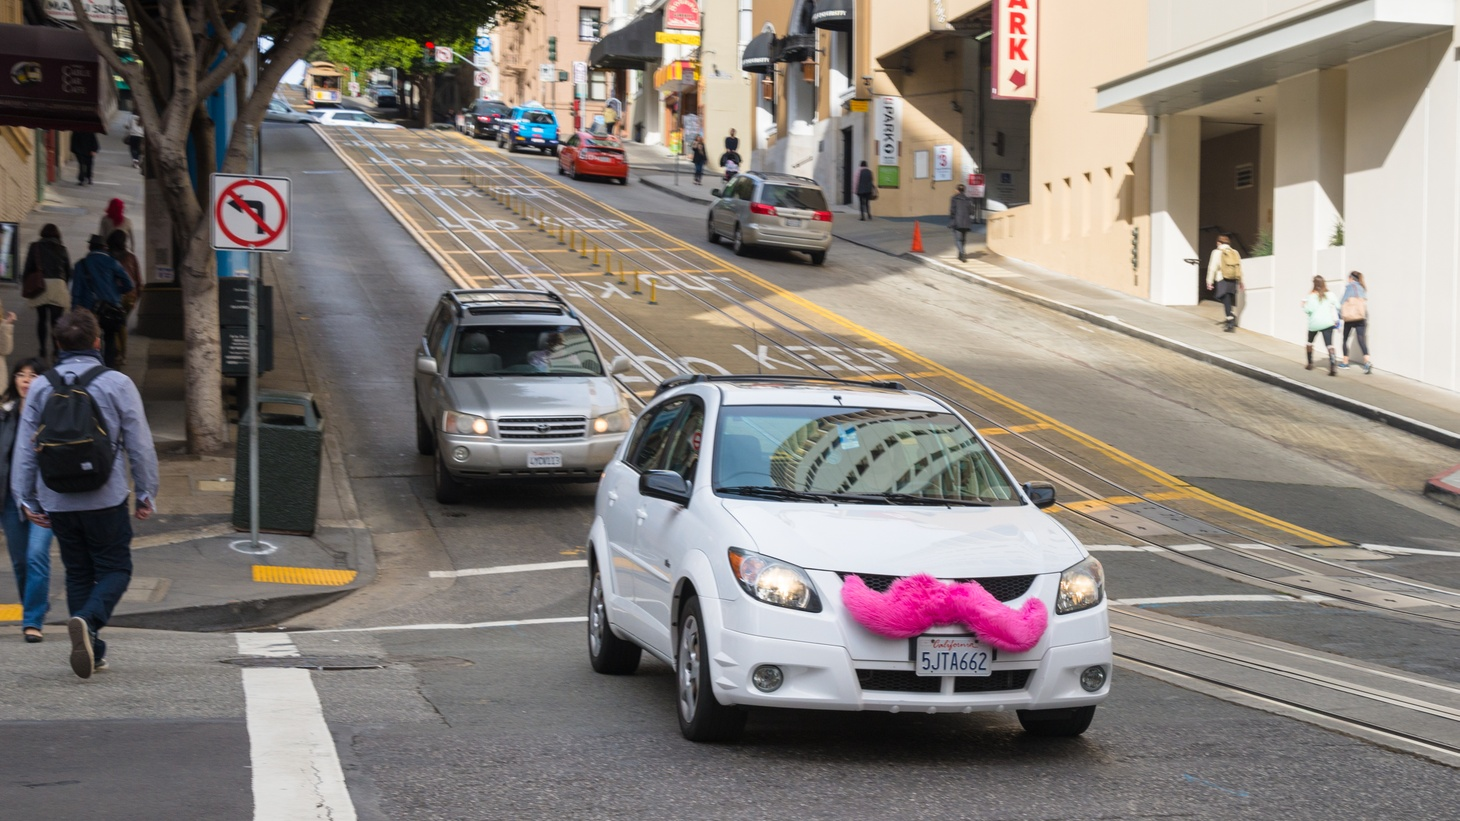 Proposition 22 would exempt gig workers for companies like Lyft and Uber from AB5.